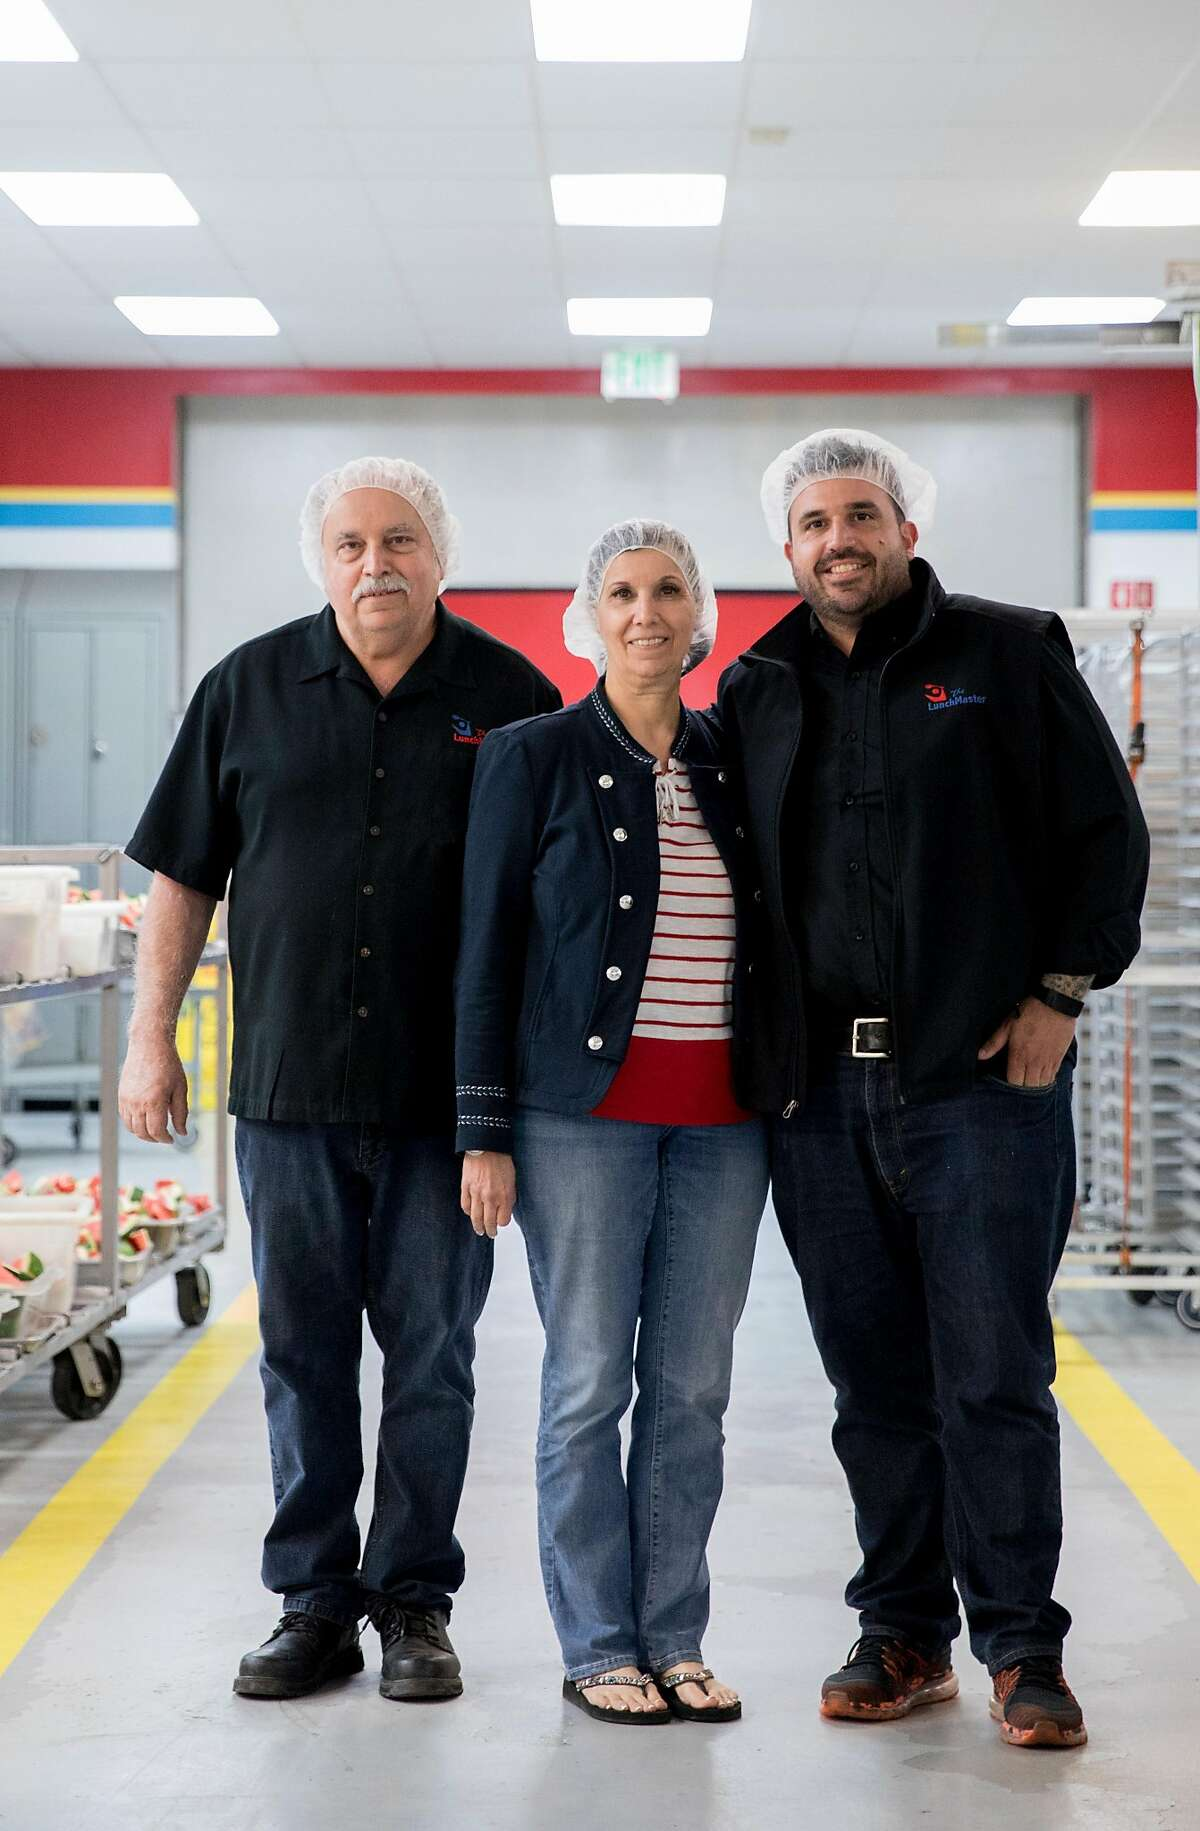 (From left) Lunch Master owners Ted Giouzelis, Marie Giouzelis and Michael Giouzelis pose for a portrait inside the Lunch Master facility in San Carlos, Calif., Friday, May 3, 2019.